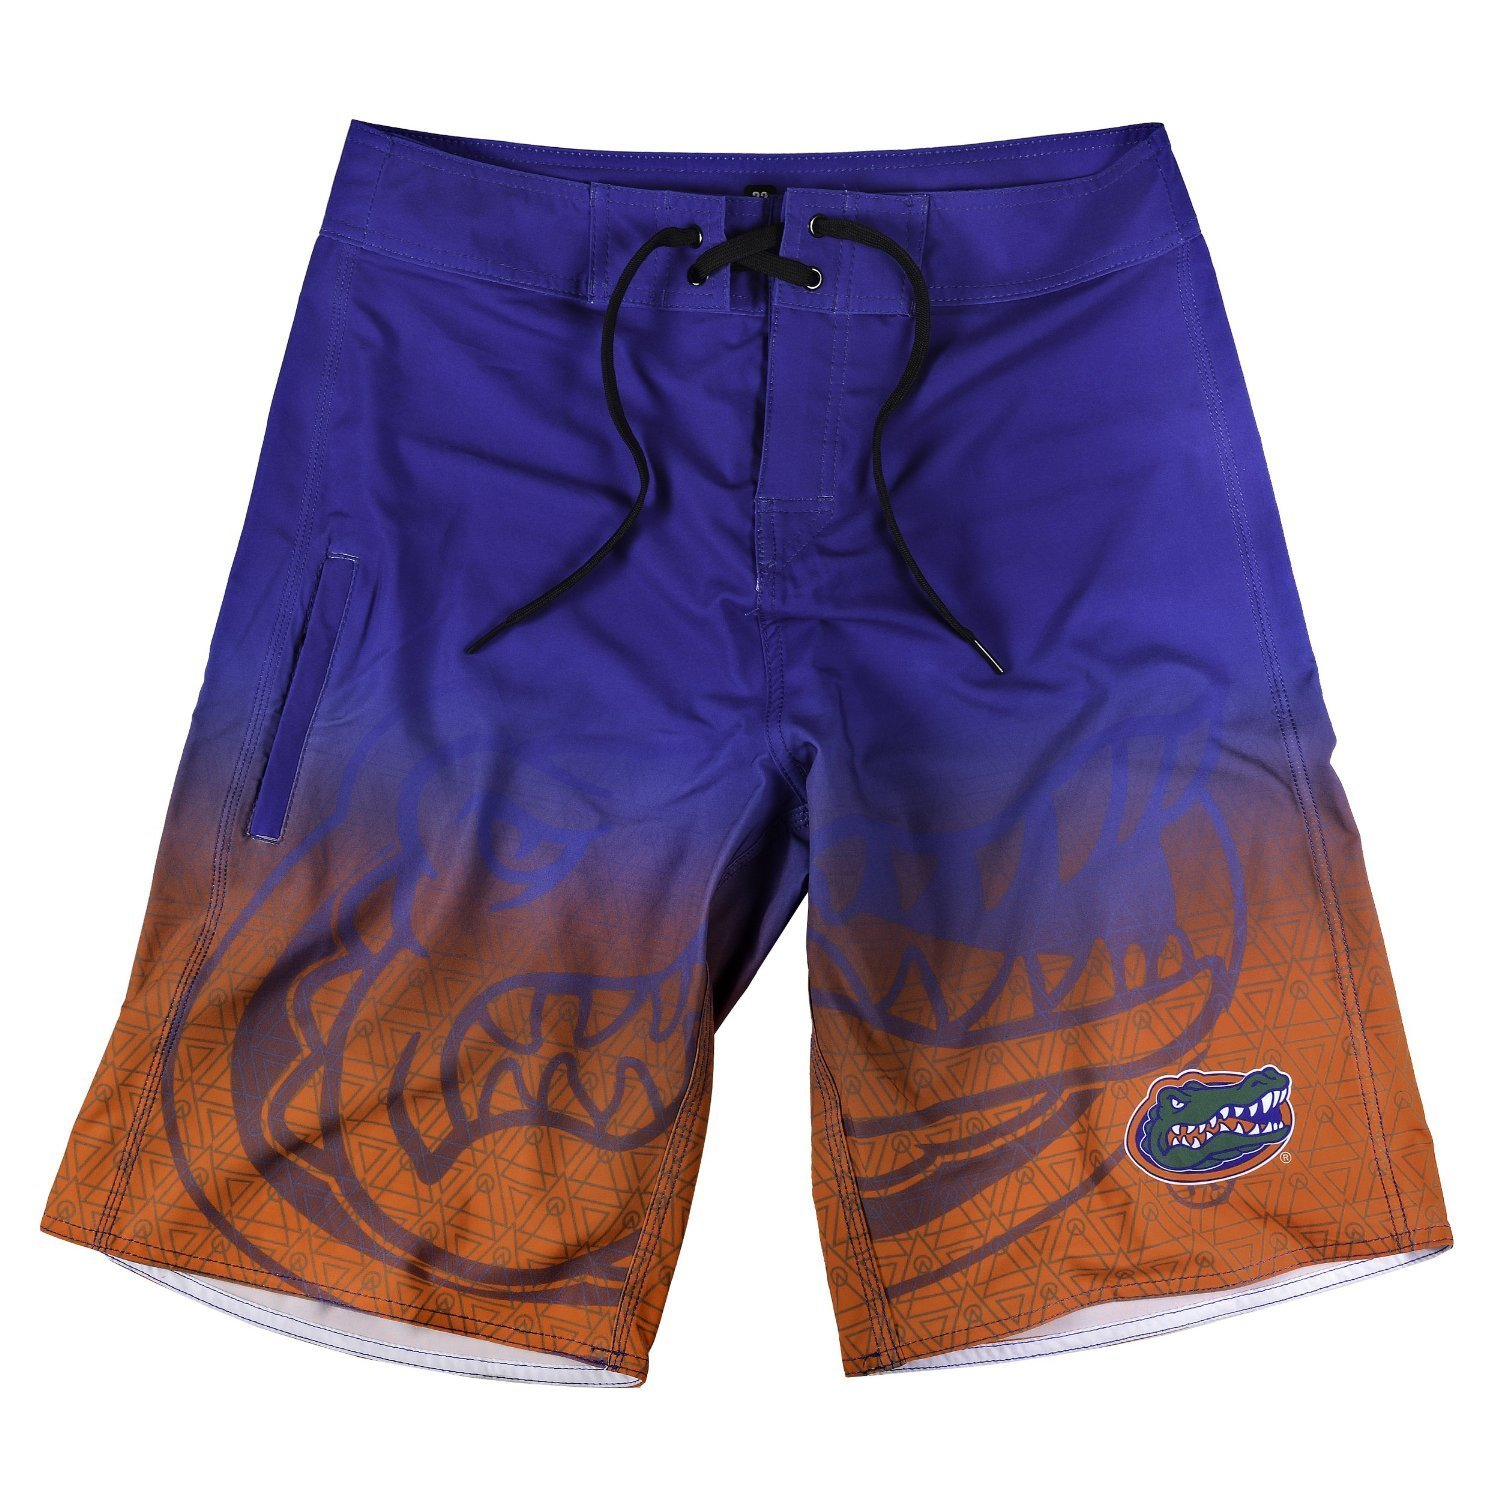 2015 NCAA College Mens Gradient Swimsuit Board Shorts - Pick Team